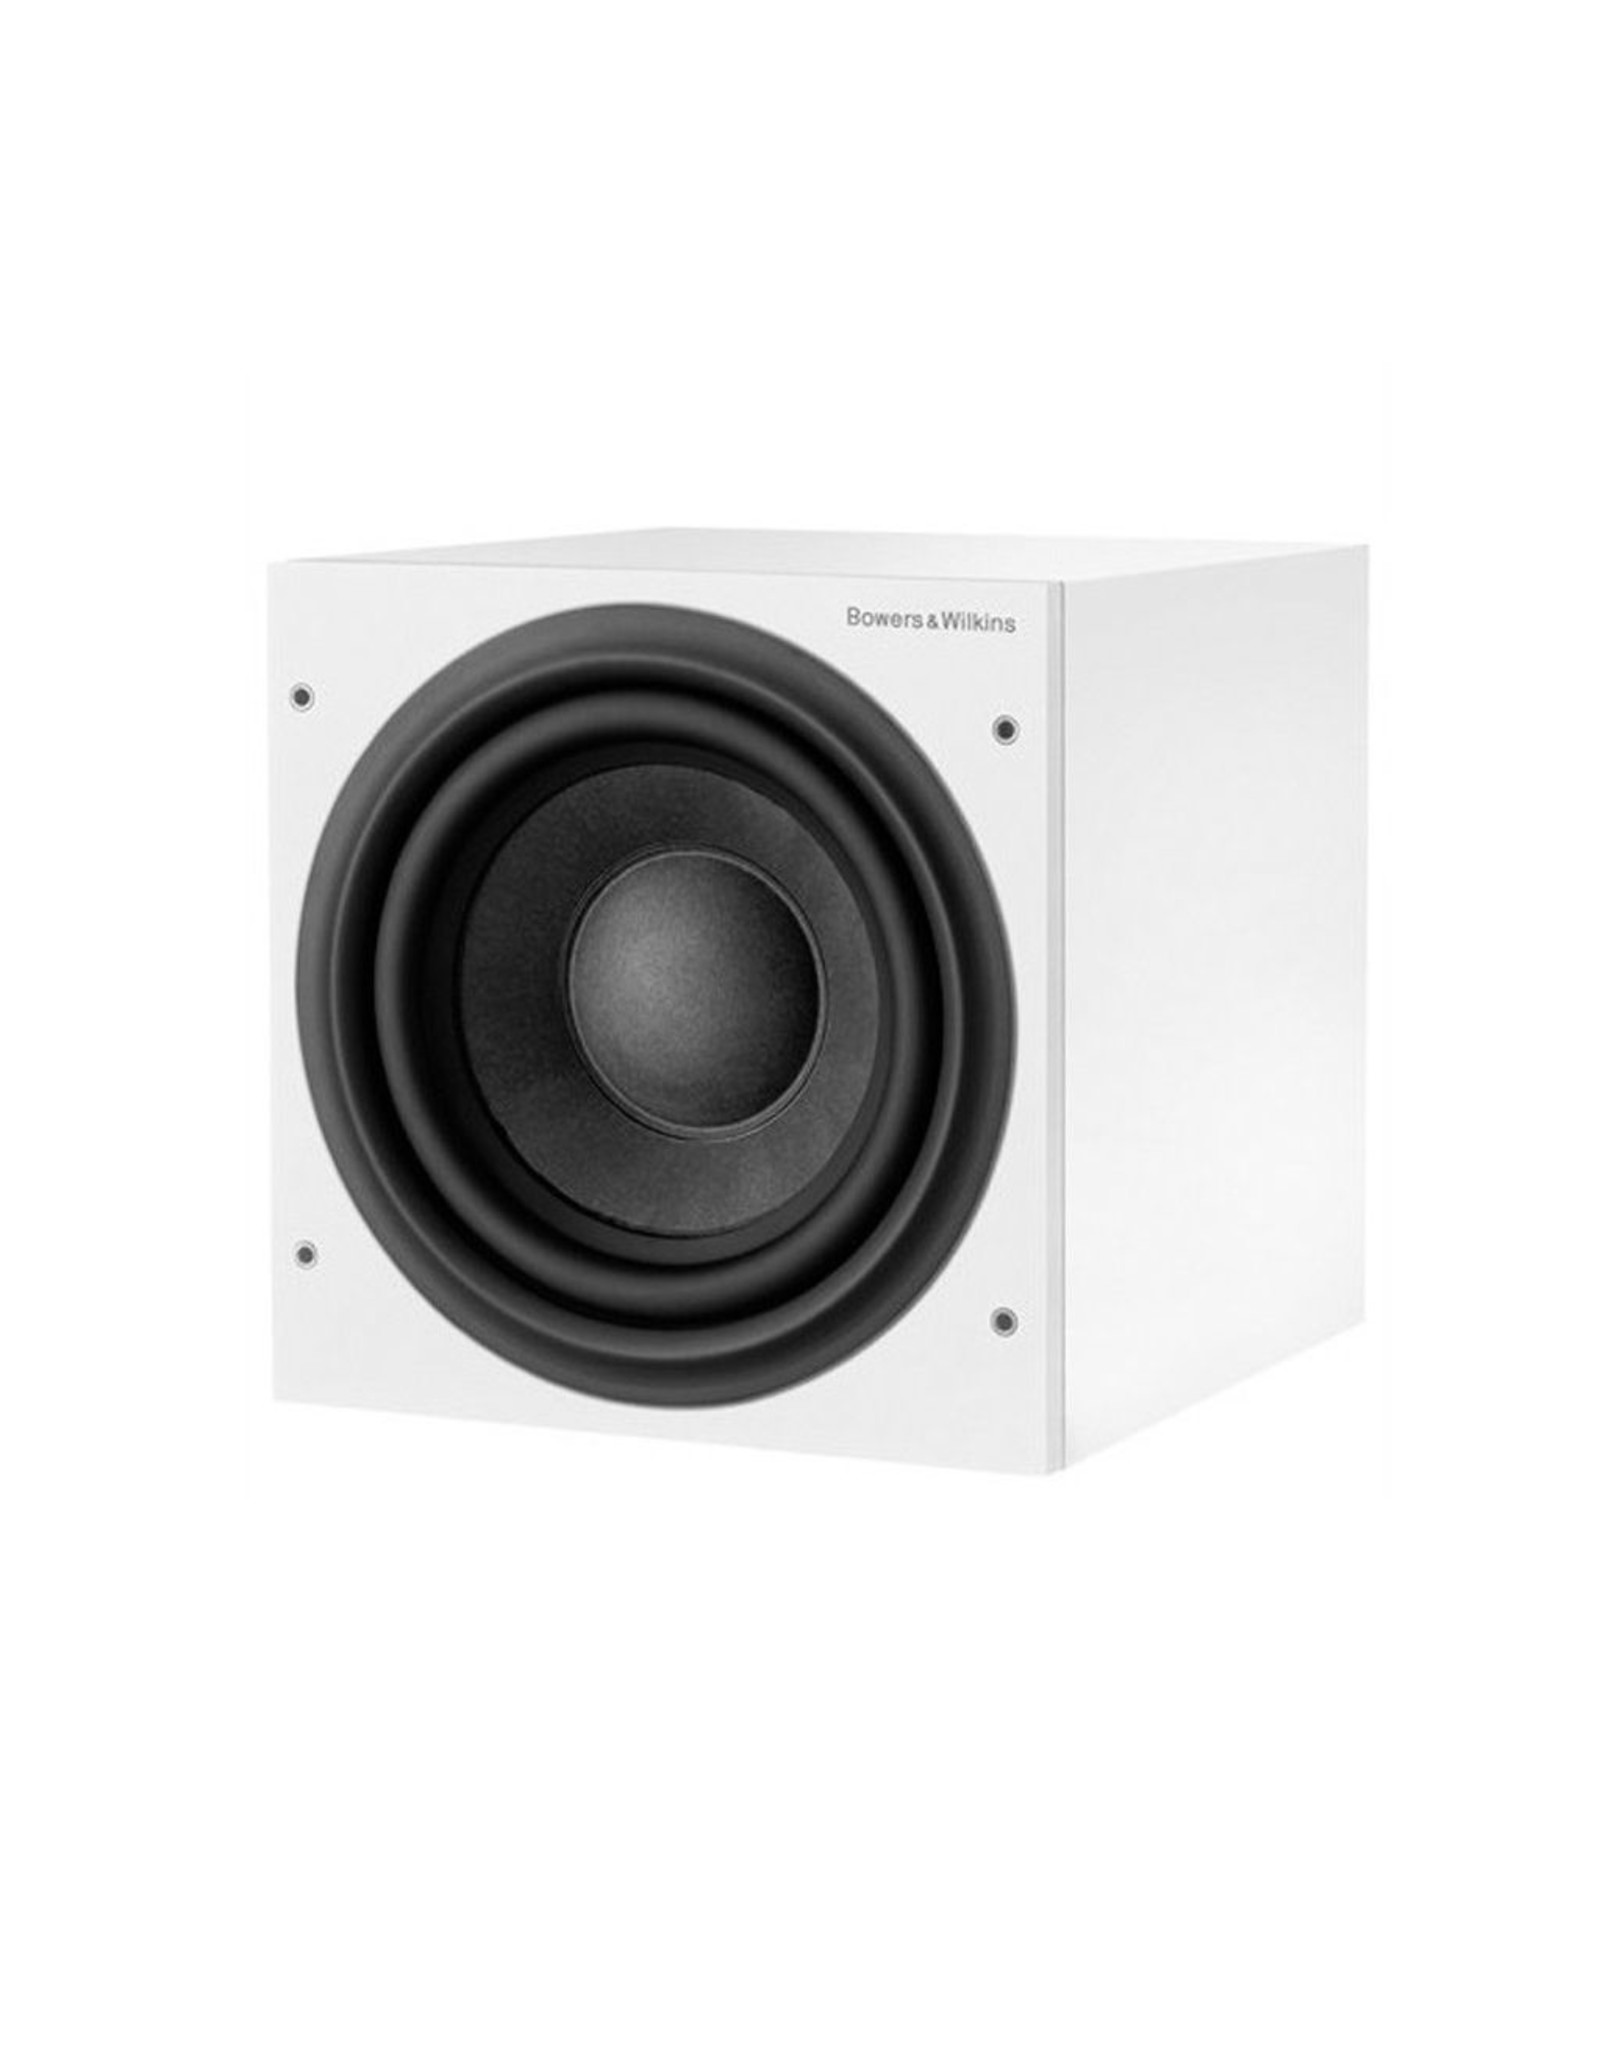 BOWERS & WILKINS B&W ASW610XP Subwoofer